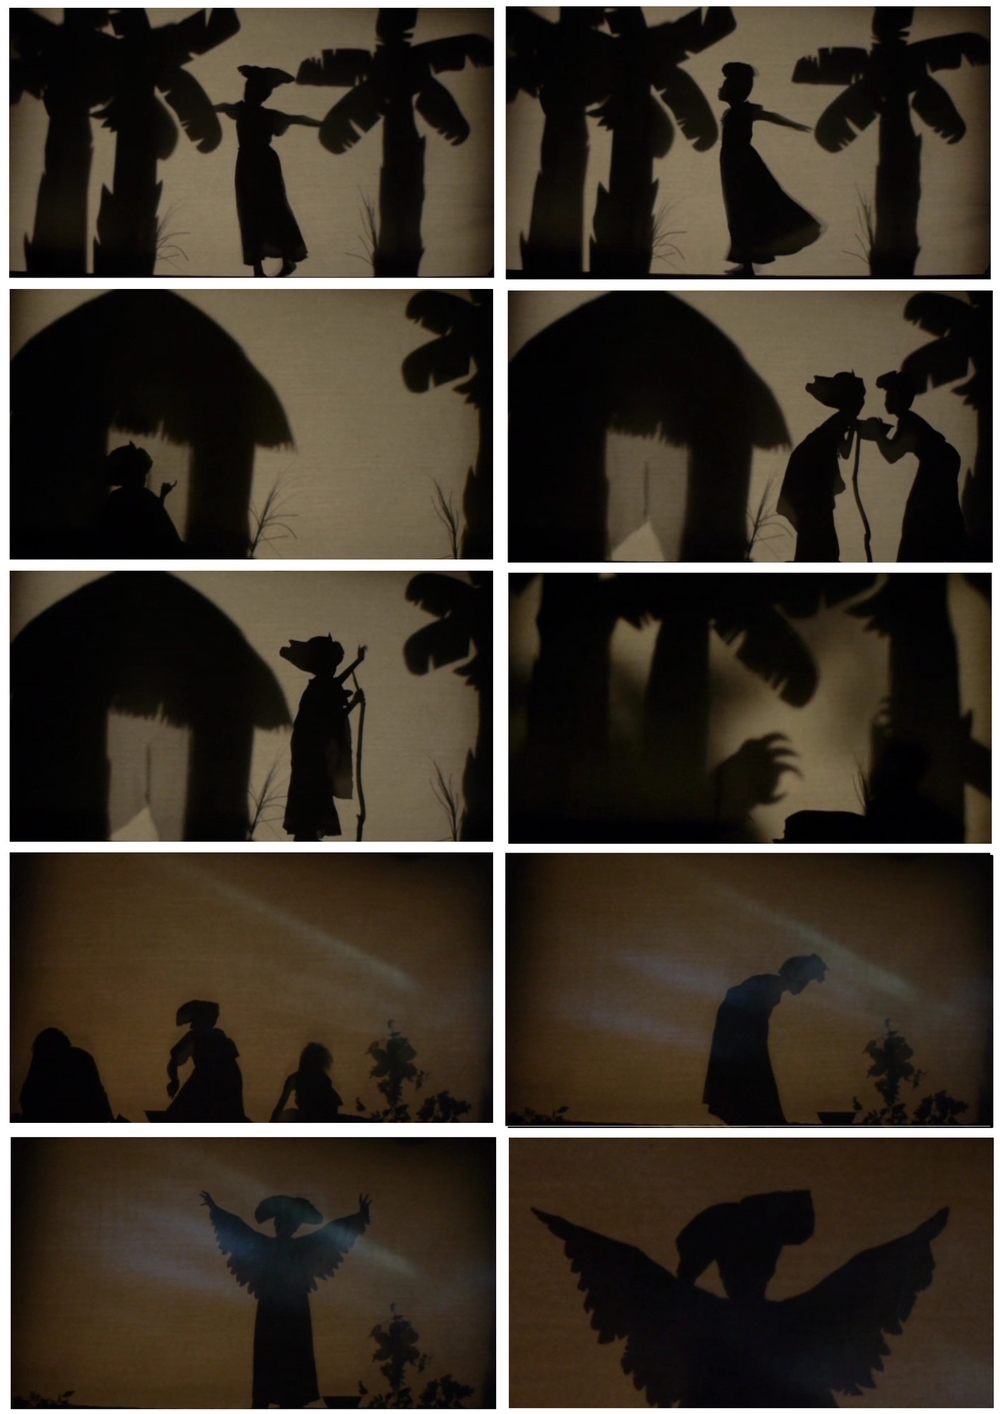 Shadow Play Scenes